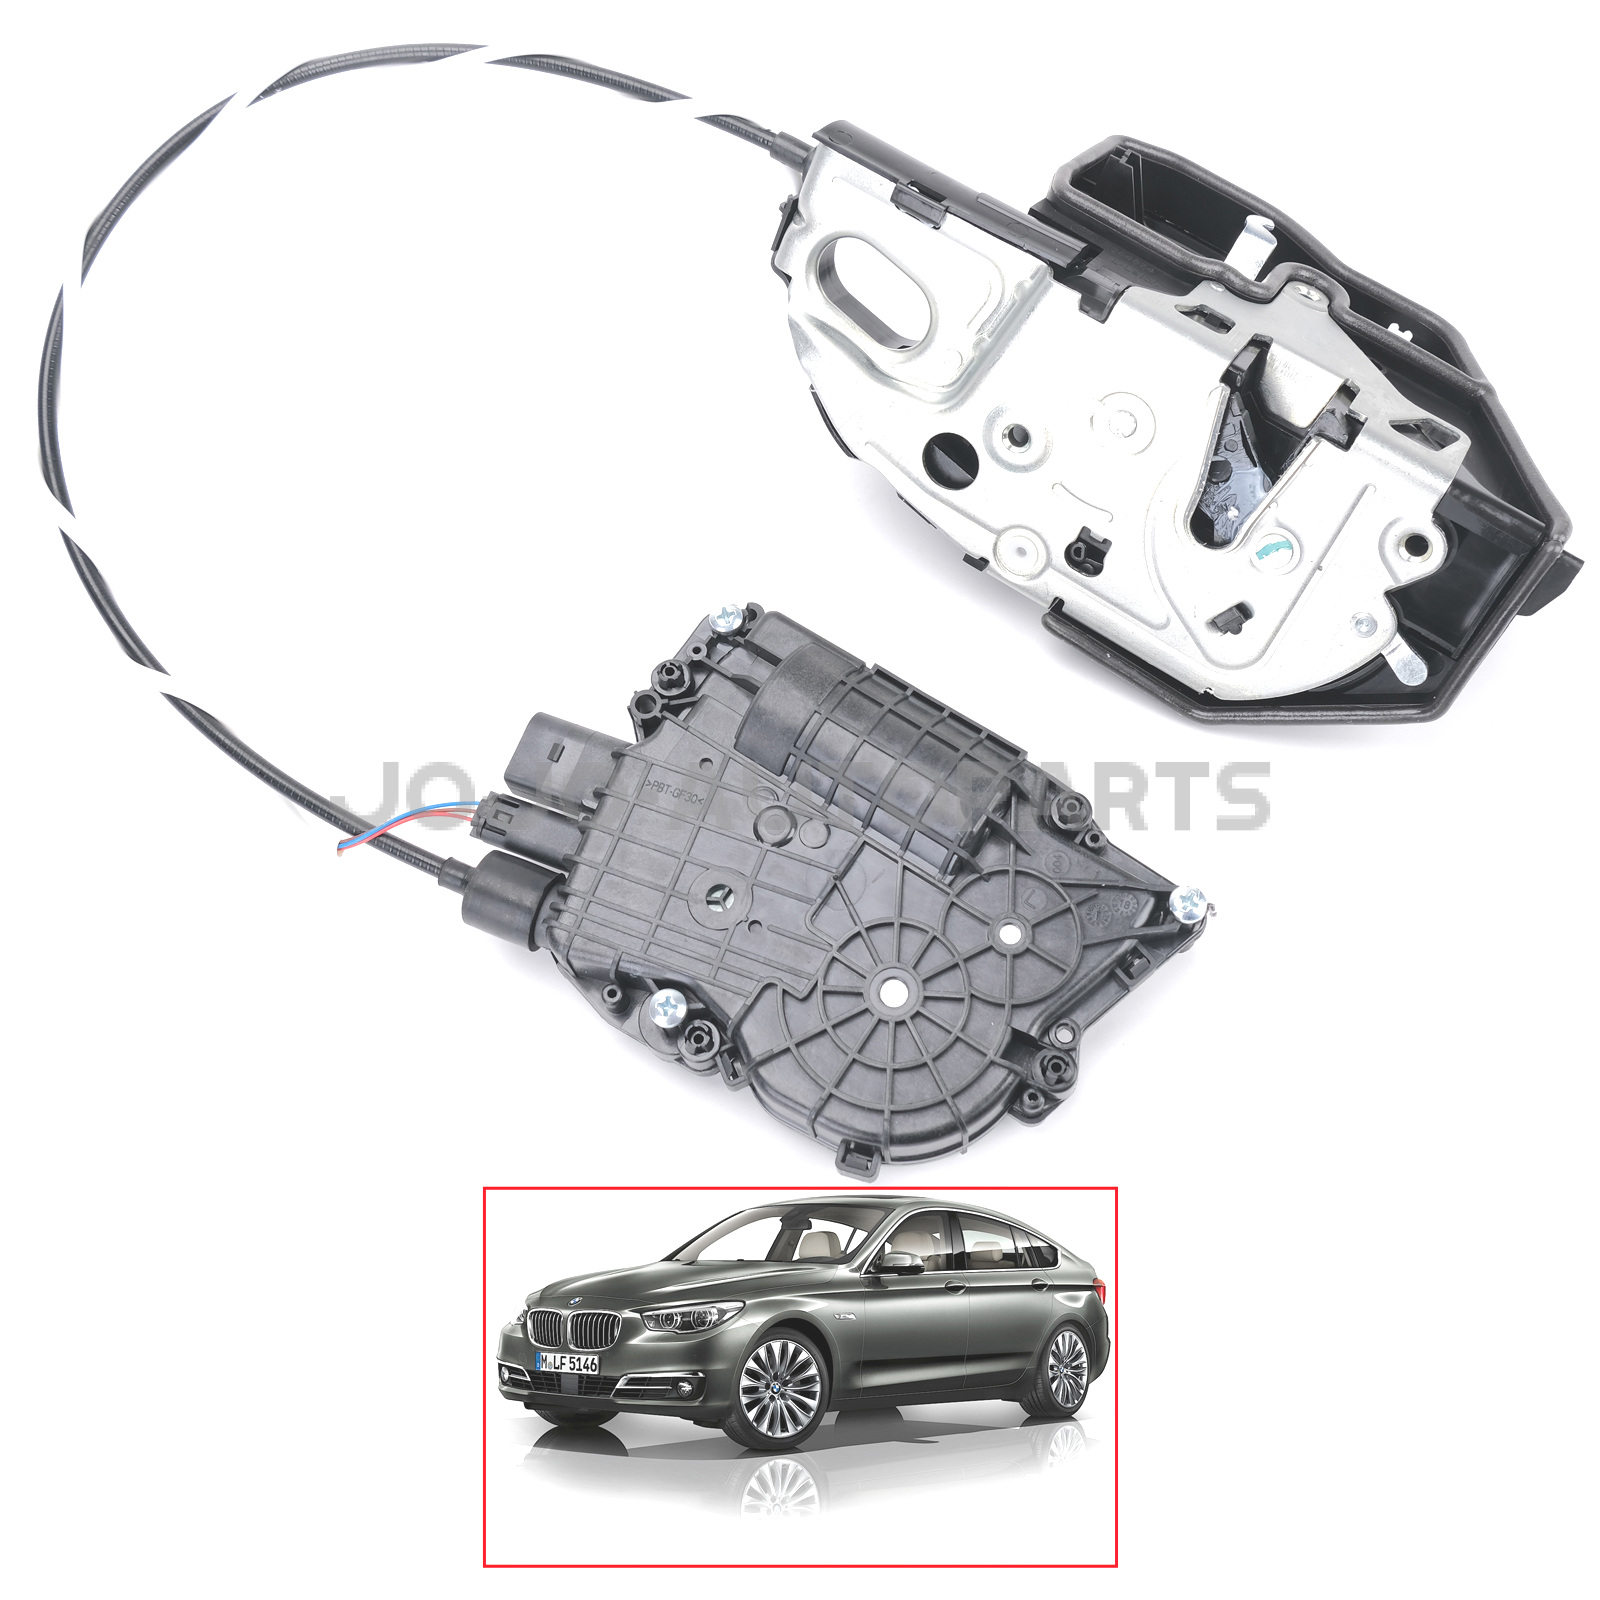 FRONT RIGHT RH SOFT CLOSE DOOR LOCK LATCH ACTUATOR FOR BMW